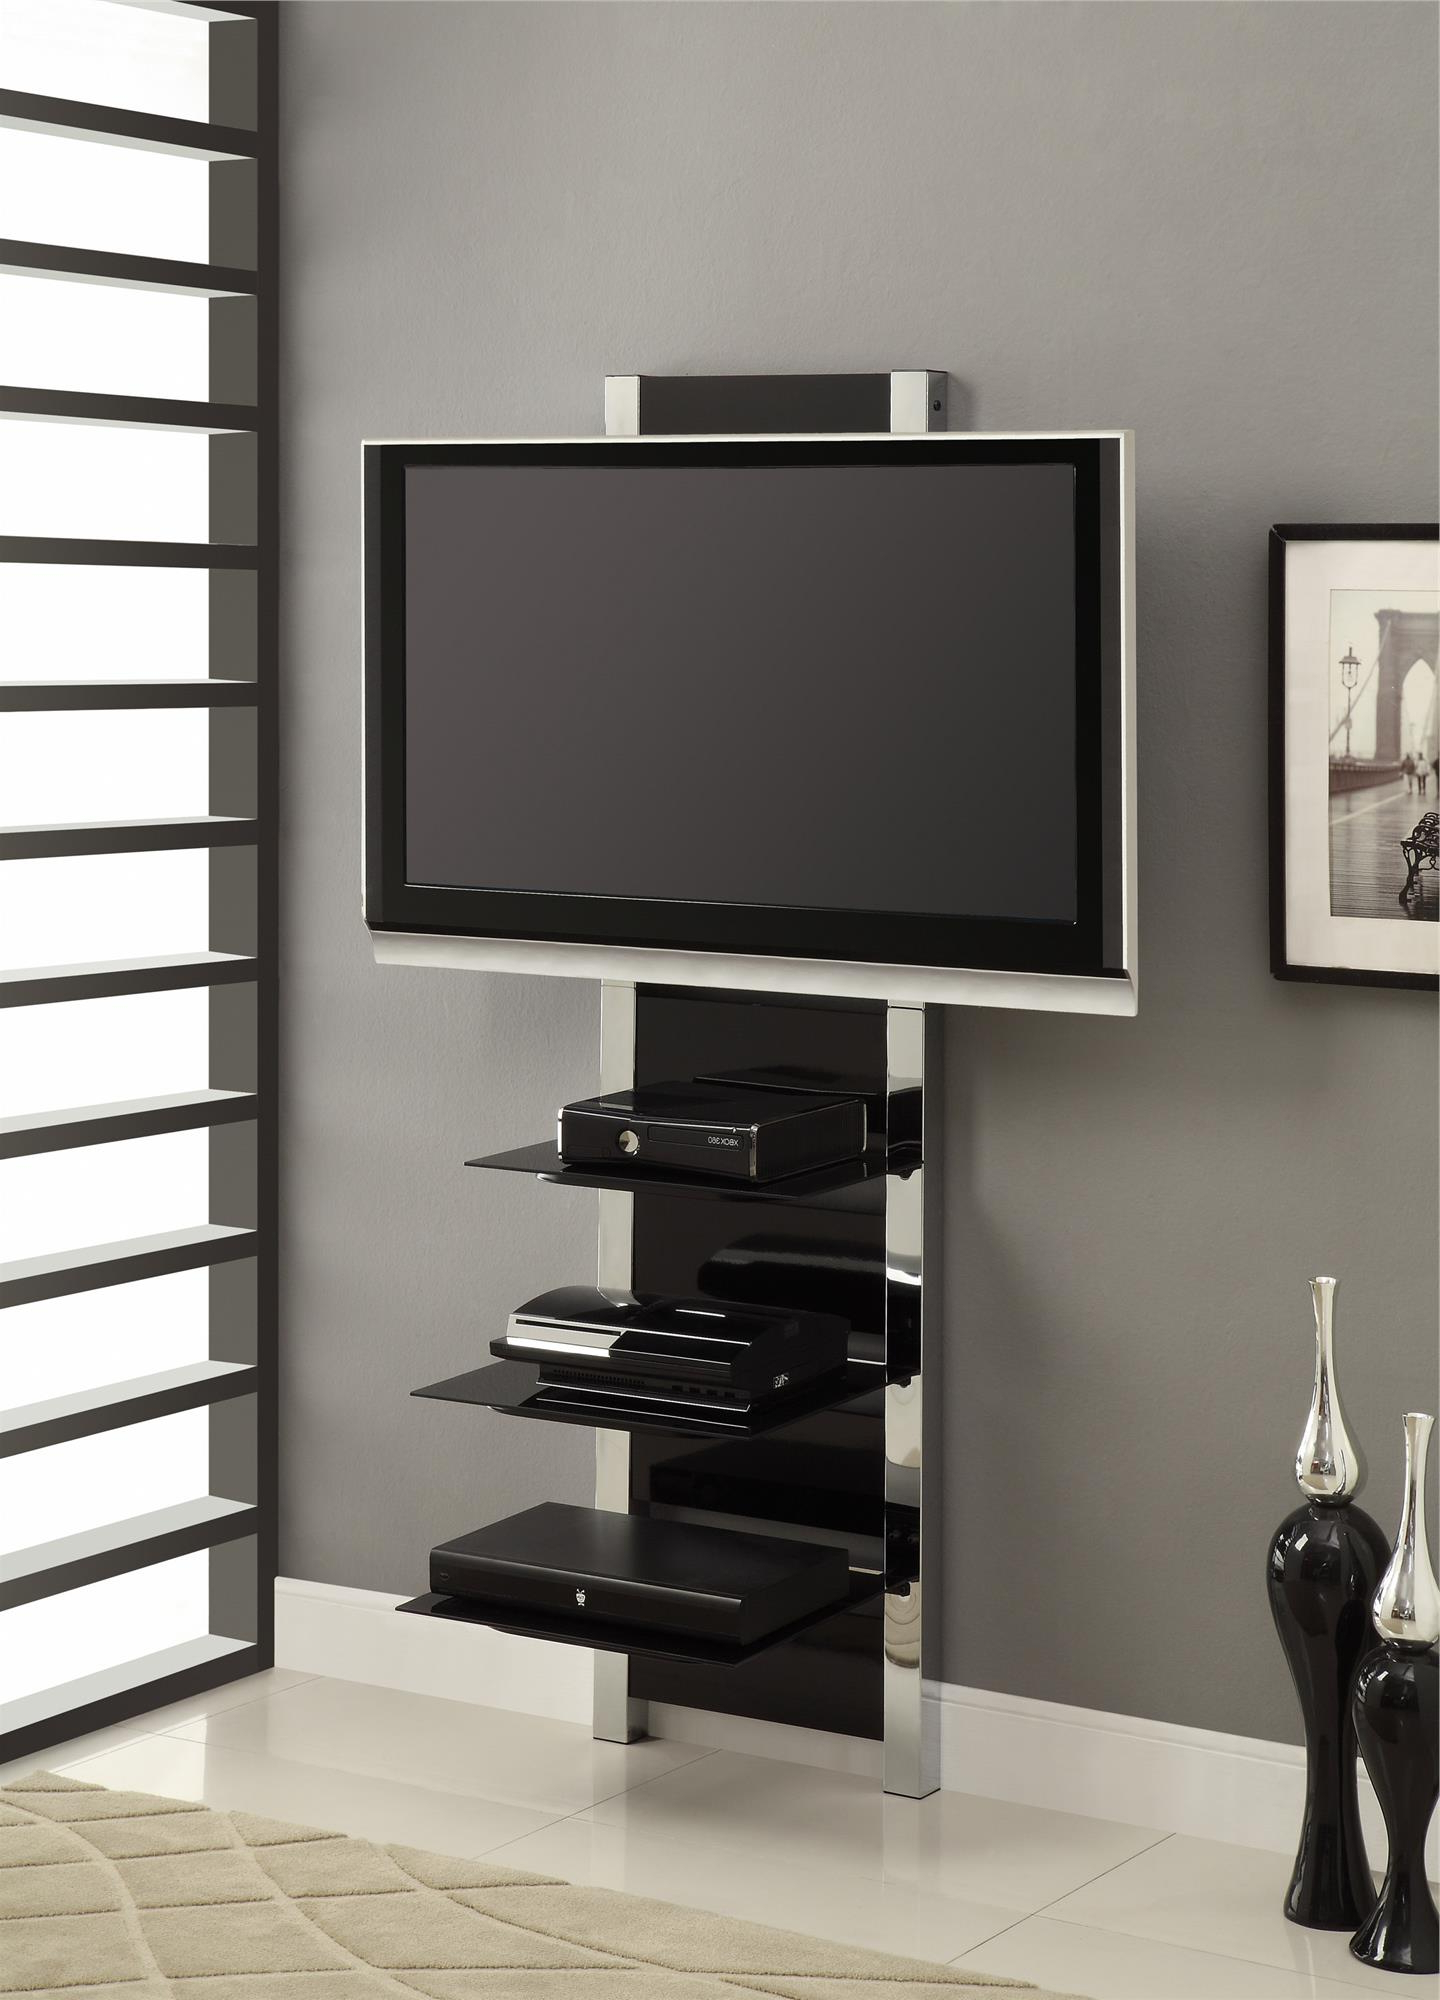 Chrome Tv Floor Stands With Legs Plus Together Black Glass And Stand Regarding Most Recent Tv Stands For 43 Inch Tv (Gallery 18 of 20)